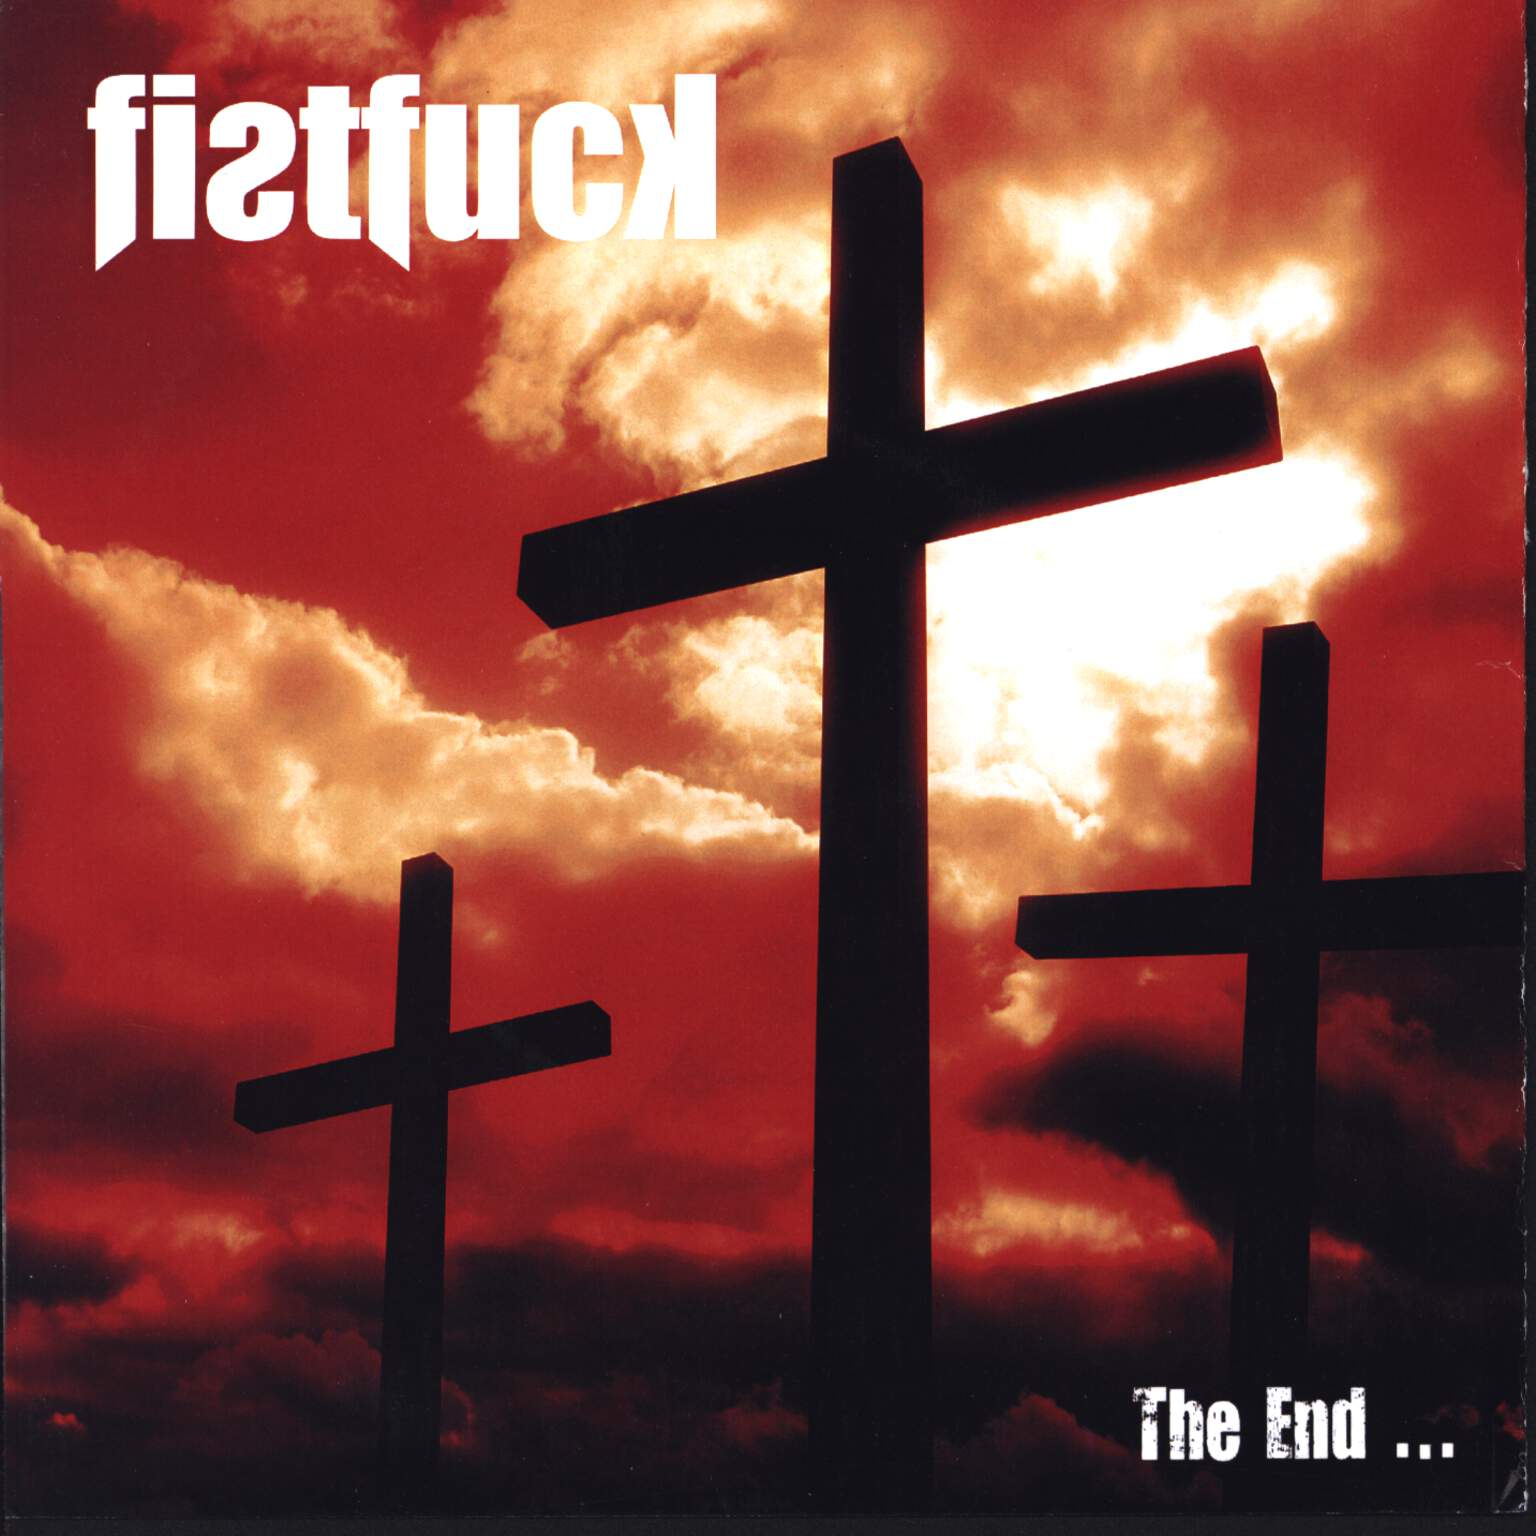 "Fistfuck: The End ... / It Was The Other One, 7"" Single (Vinyl)"